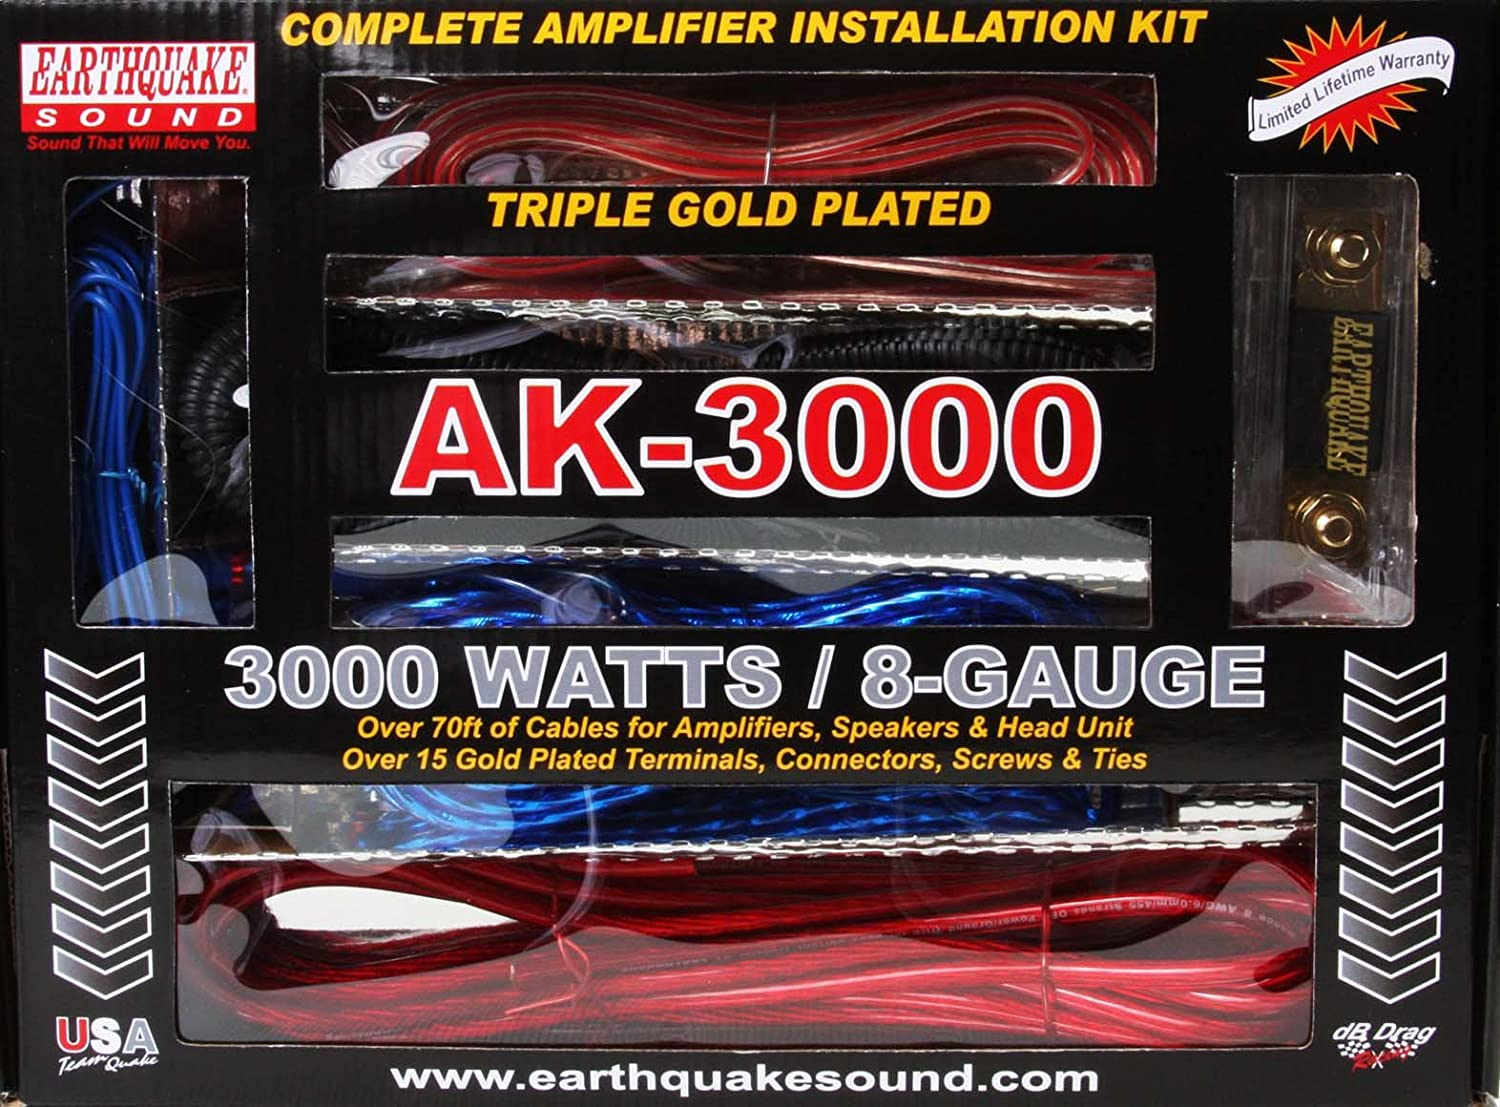 Earthquake Sound Ak 3000 Complete Amplifier Installation Wiring Kit 8ga Professional Car Kits Audio Electronics